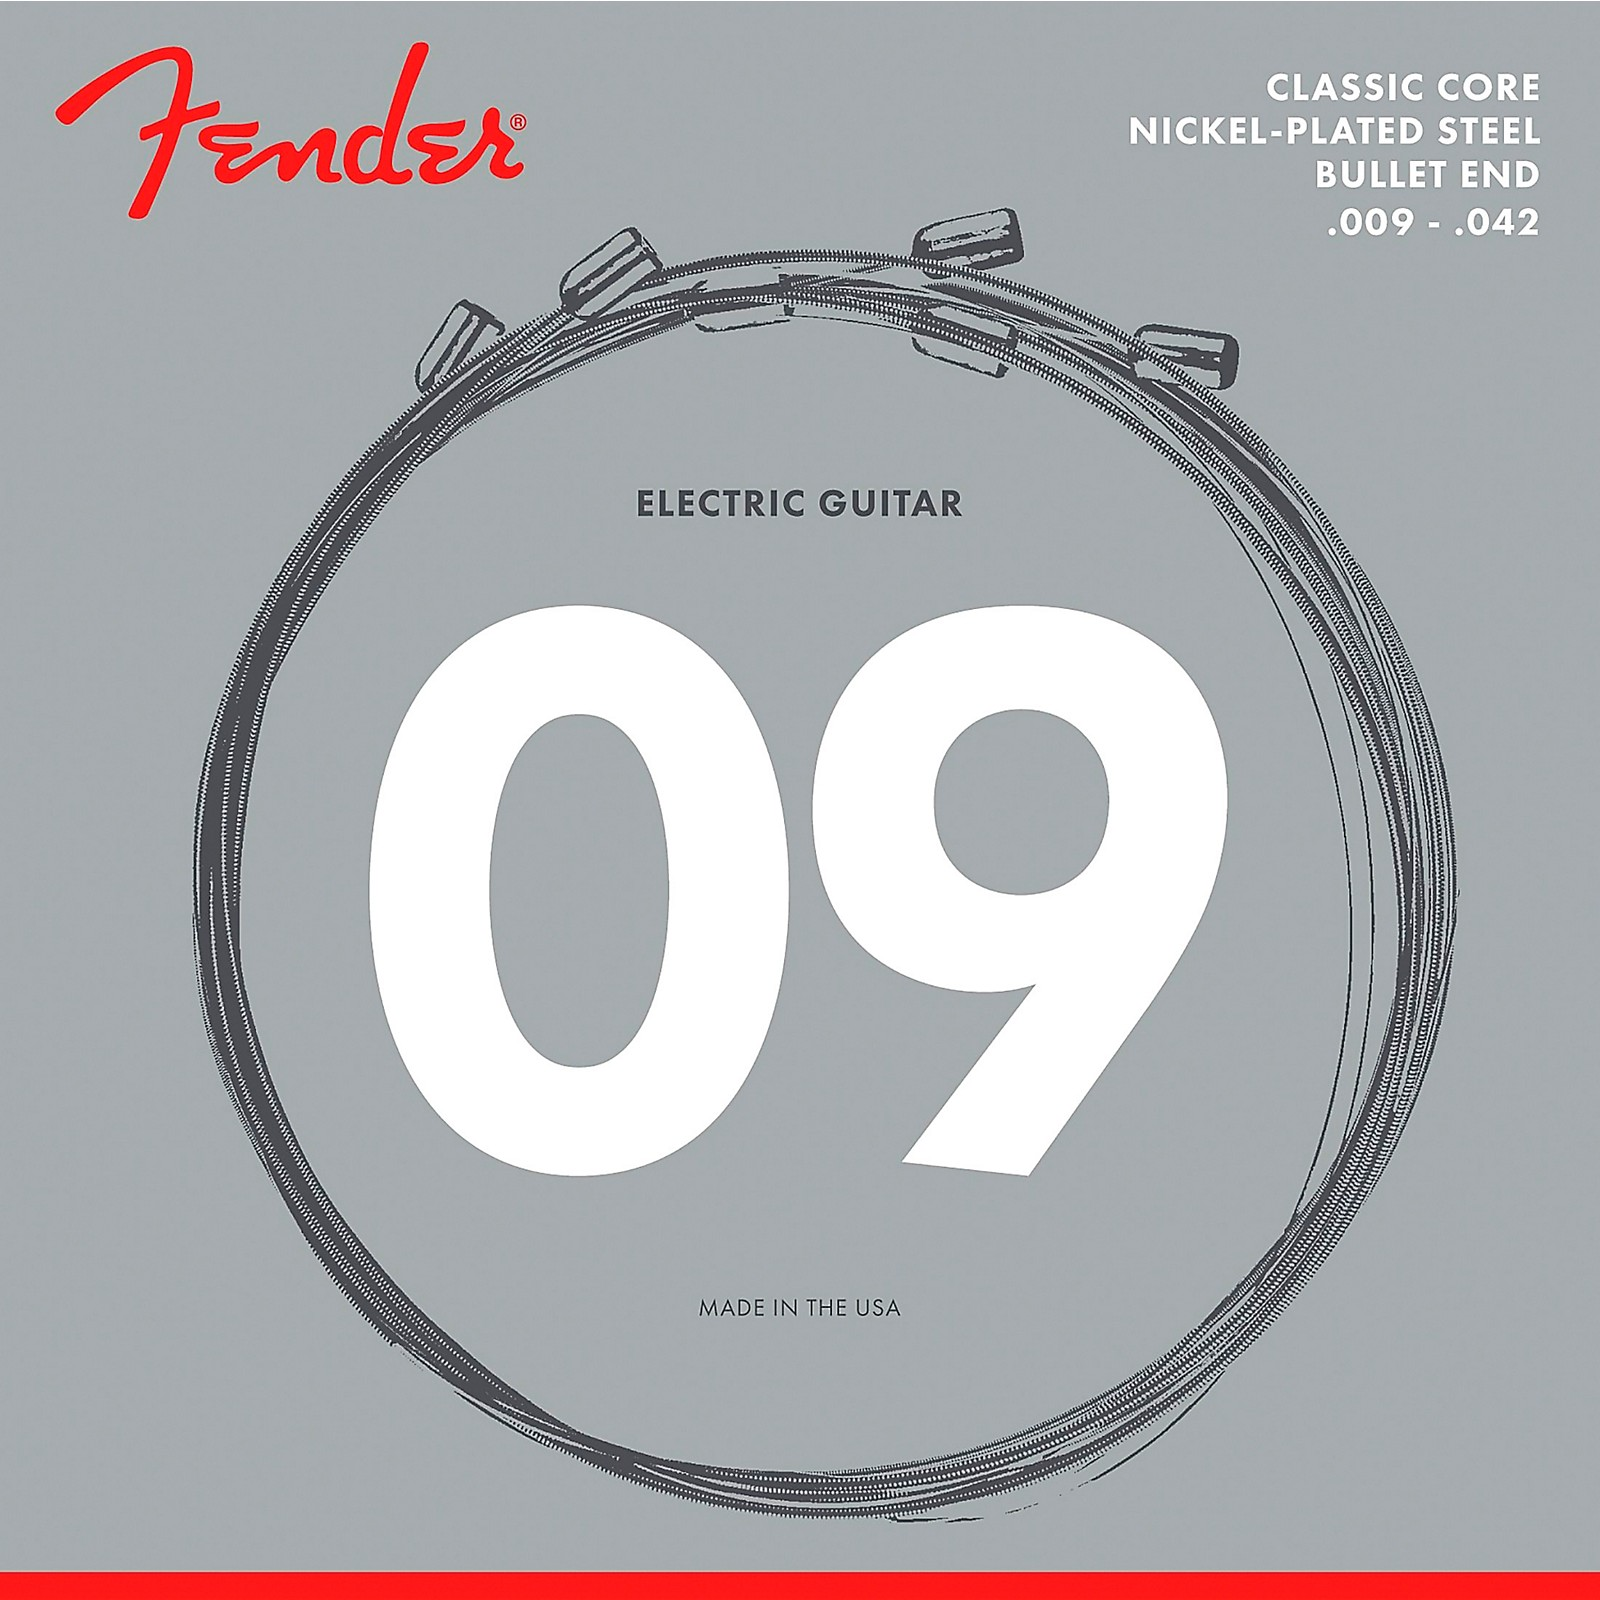 Fender Classic Core 3255L Nickel-Plated Steel Bullet End Light Guitar Strings